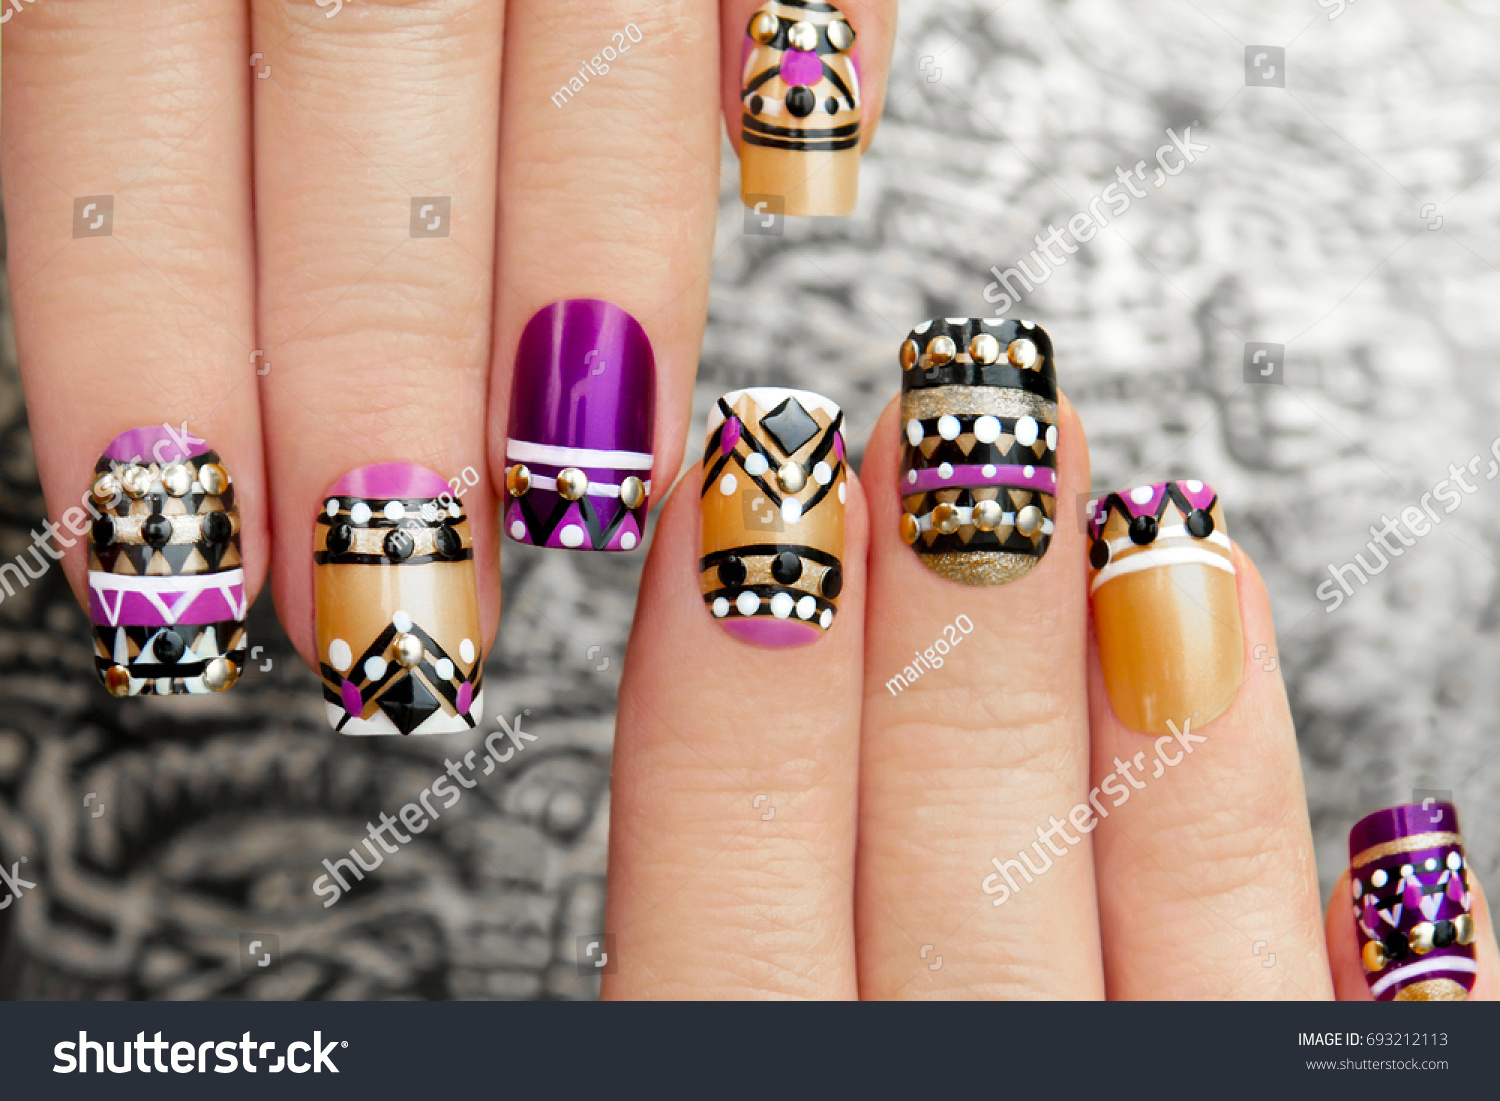 Manicure with colorful ethnic design with rhinestones on female hand close up on colorful background. #693212113